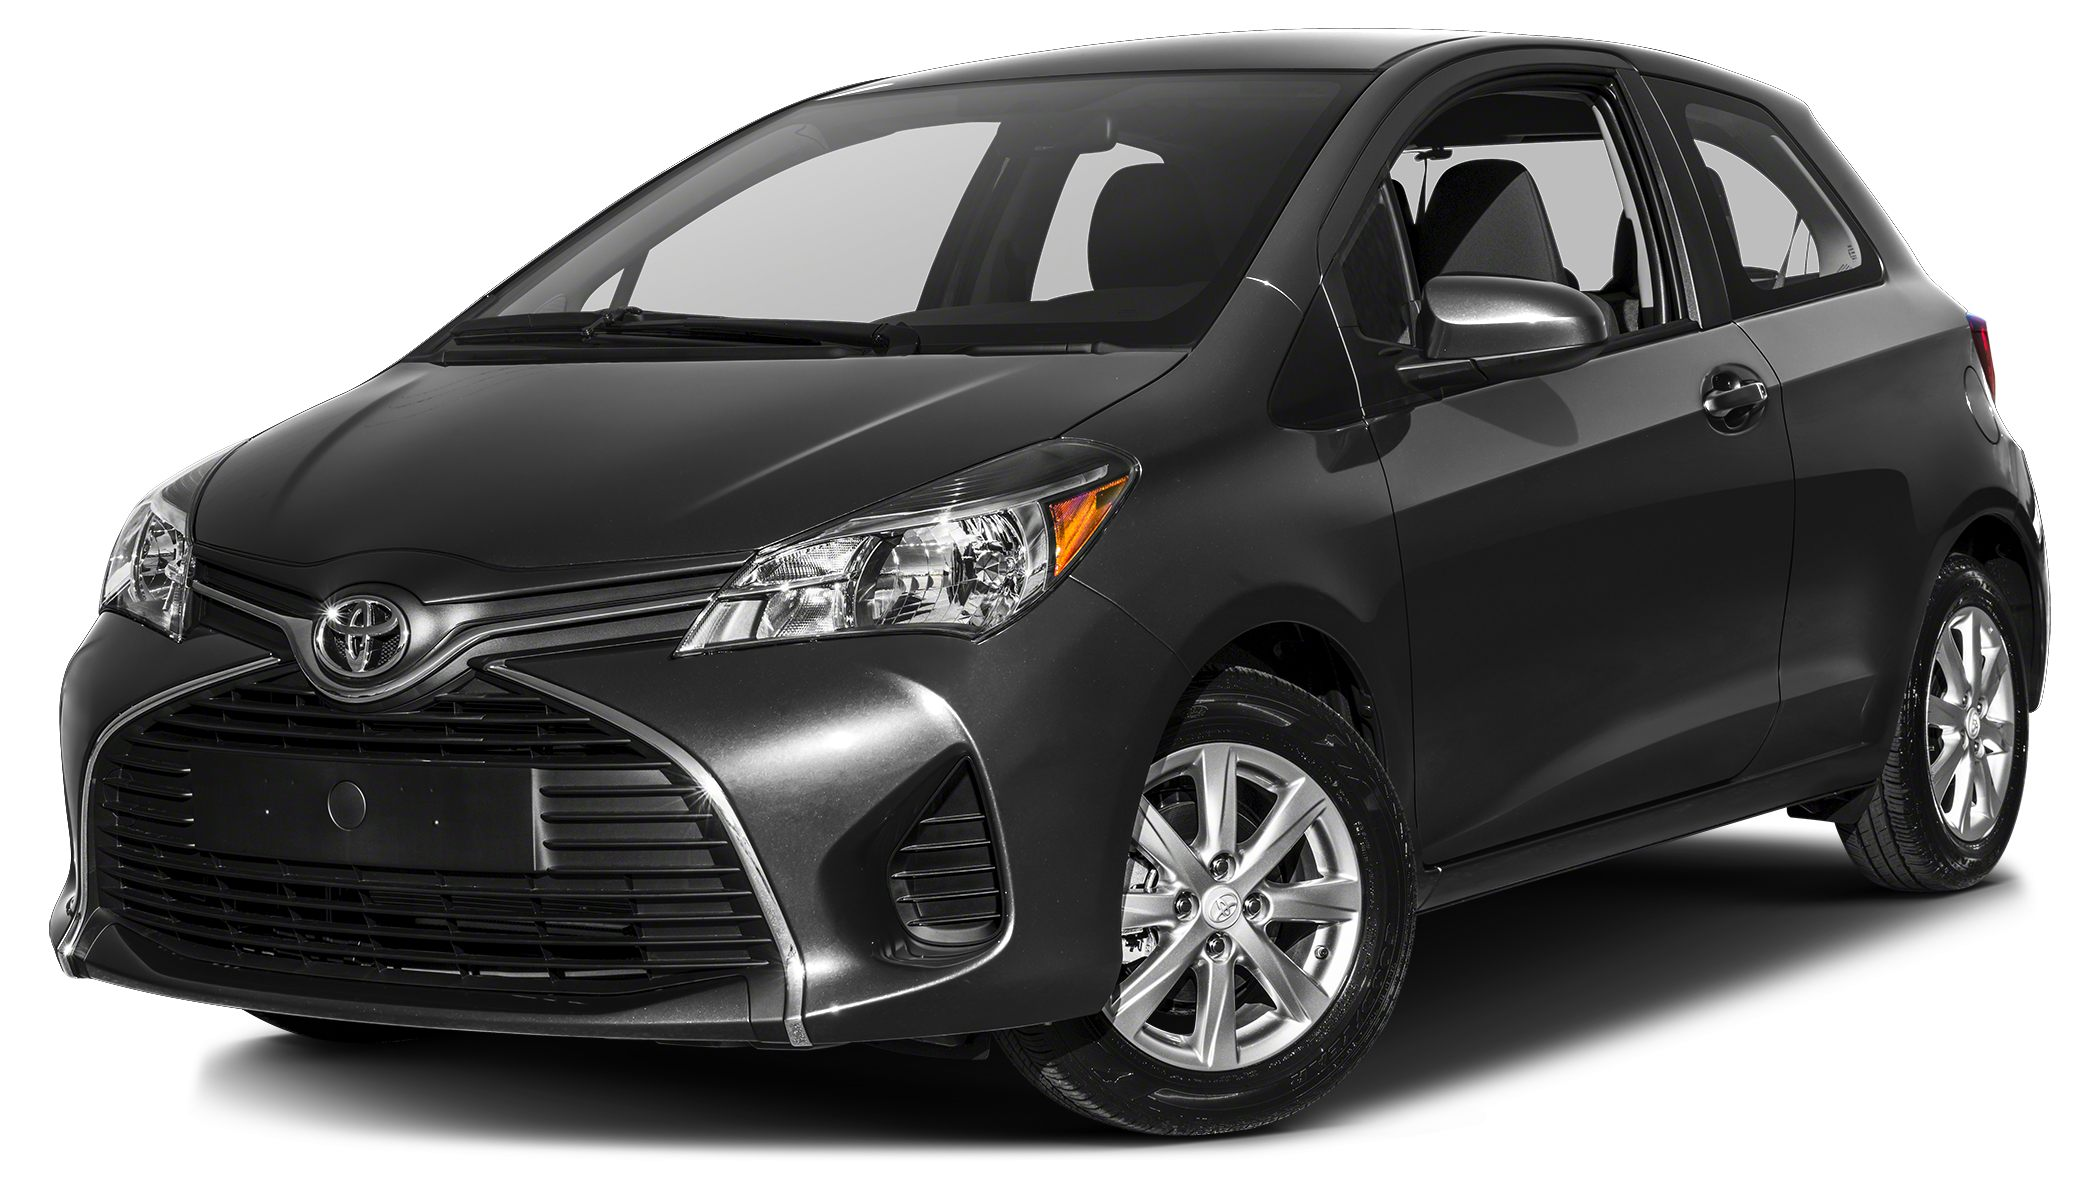 2017 Toyota Yaris LE MAGNETIC GRAY METALLIC exterior and BLACKCIRCLES interior LE trim CD Playe